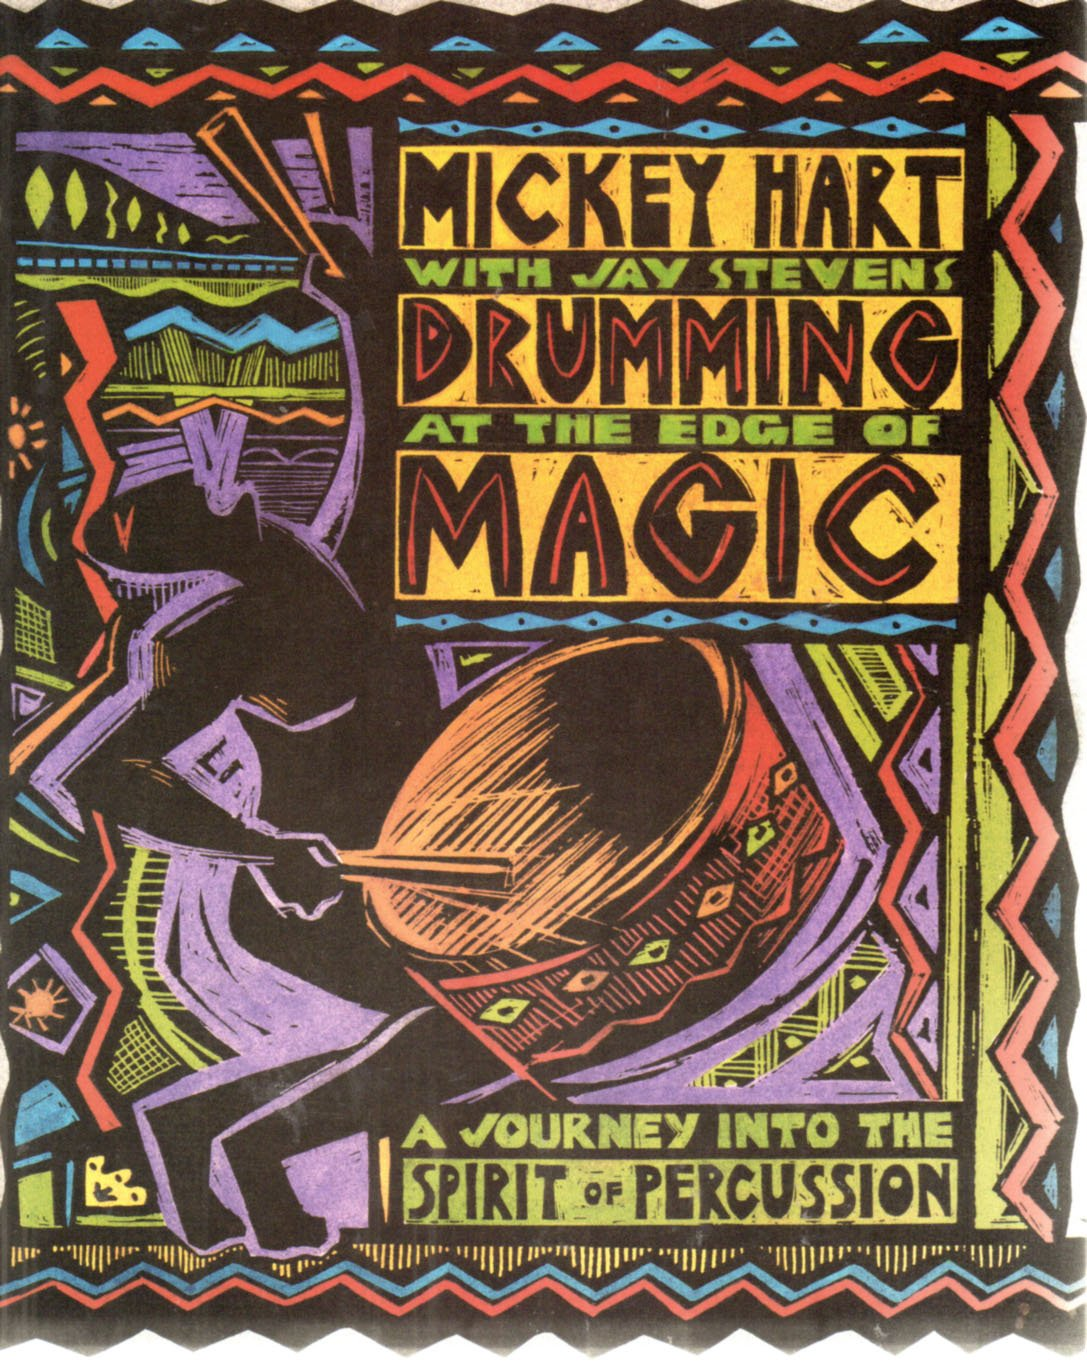 Mickey Hart Drumming At The Edge Of Magic: A Journey Into The Spirit Of Percussion